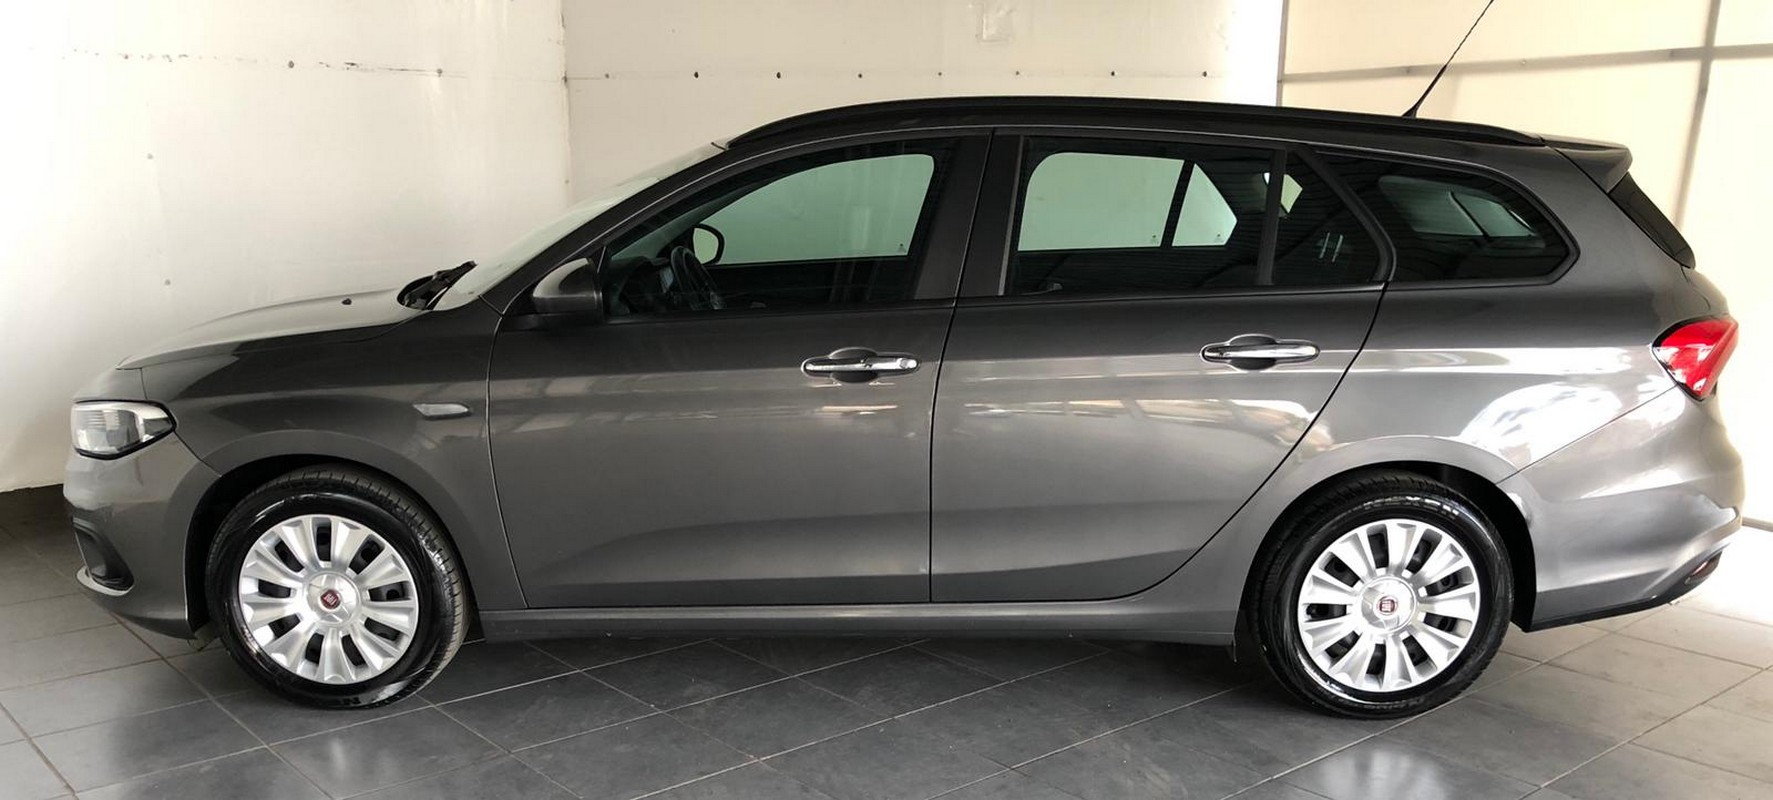 Fiat Tipo SW 1.6 Mjt S&S Easy Business Station Wagon 2016 0